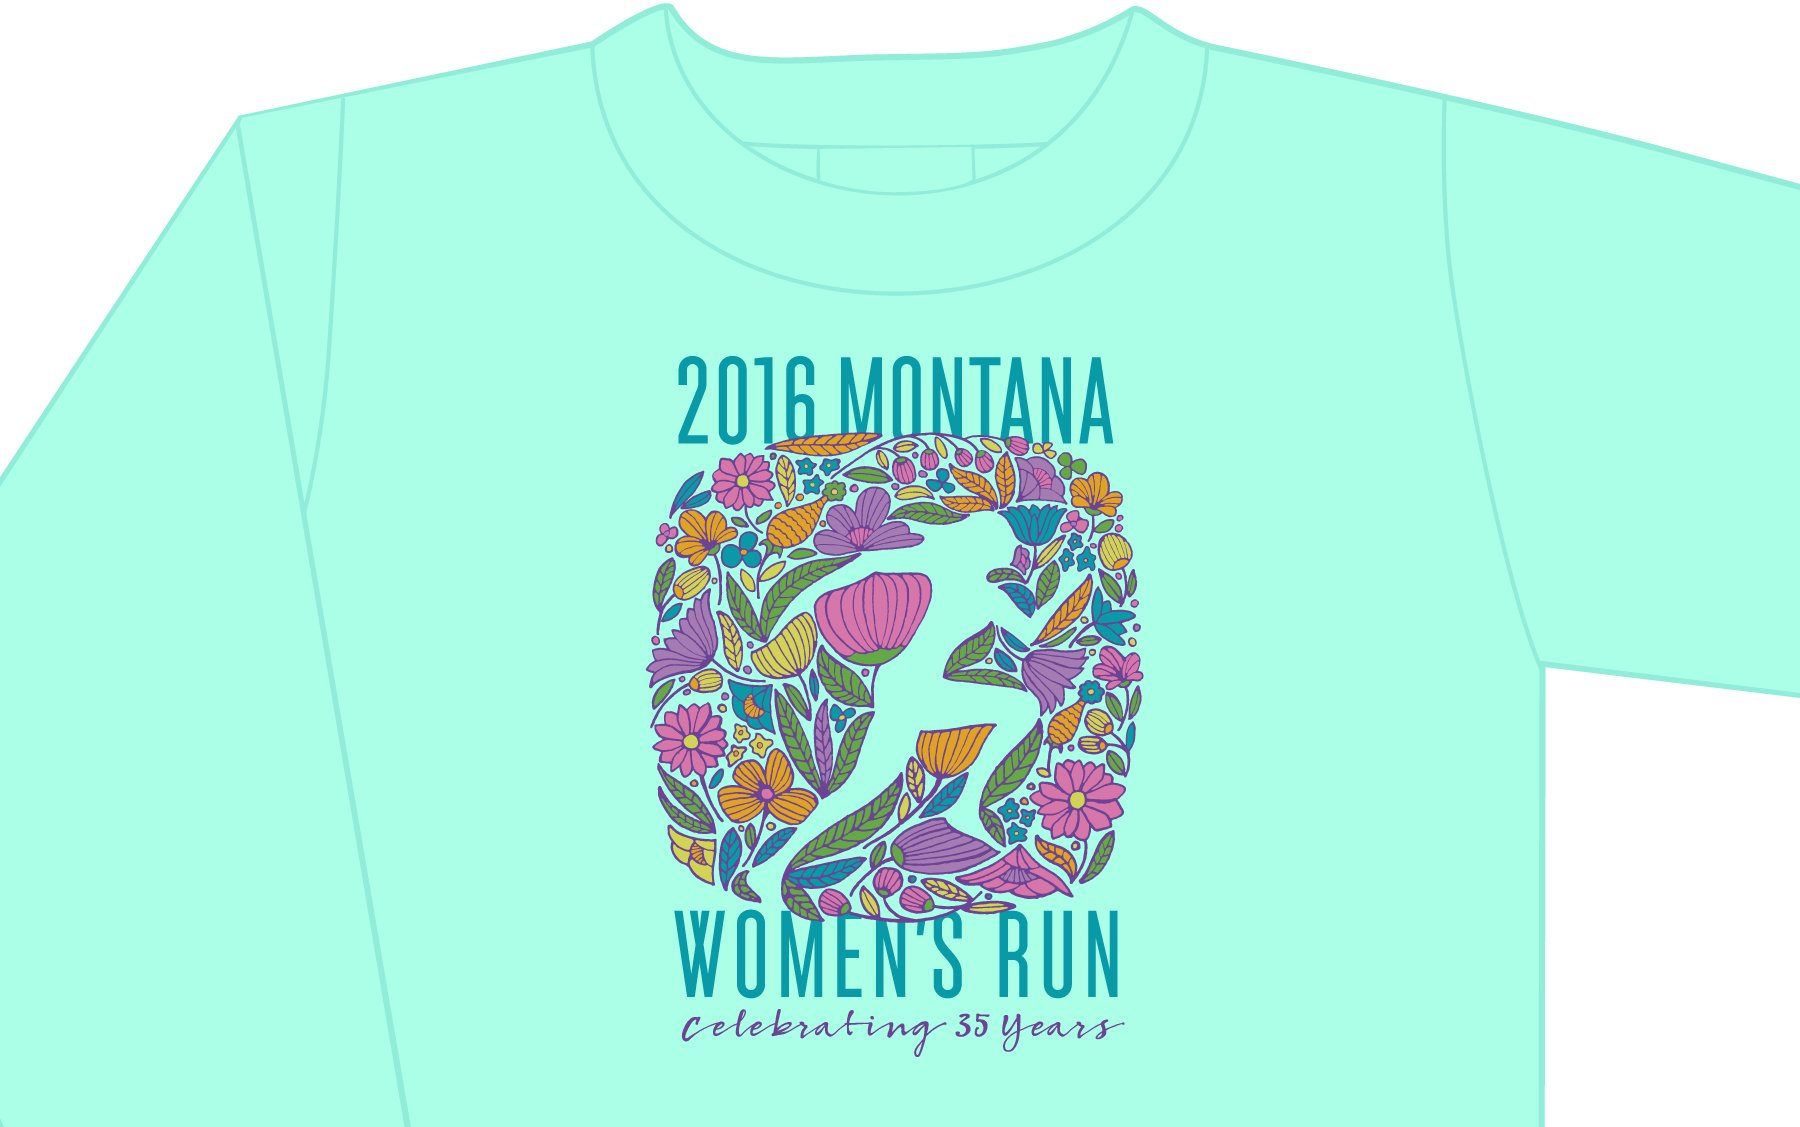 Women's Run T-Shirt design for 2016